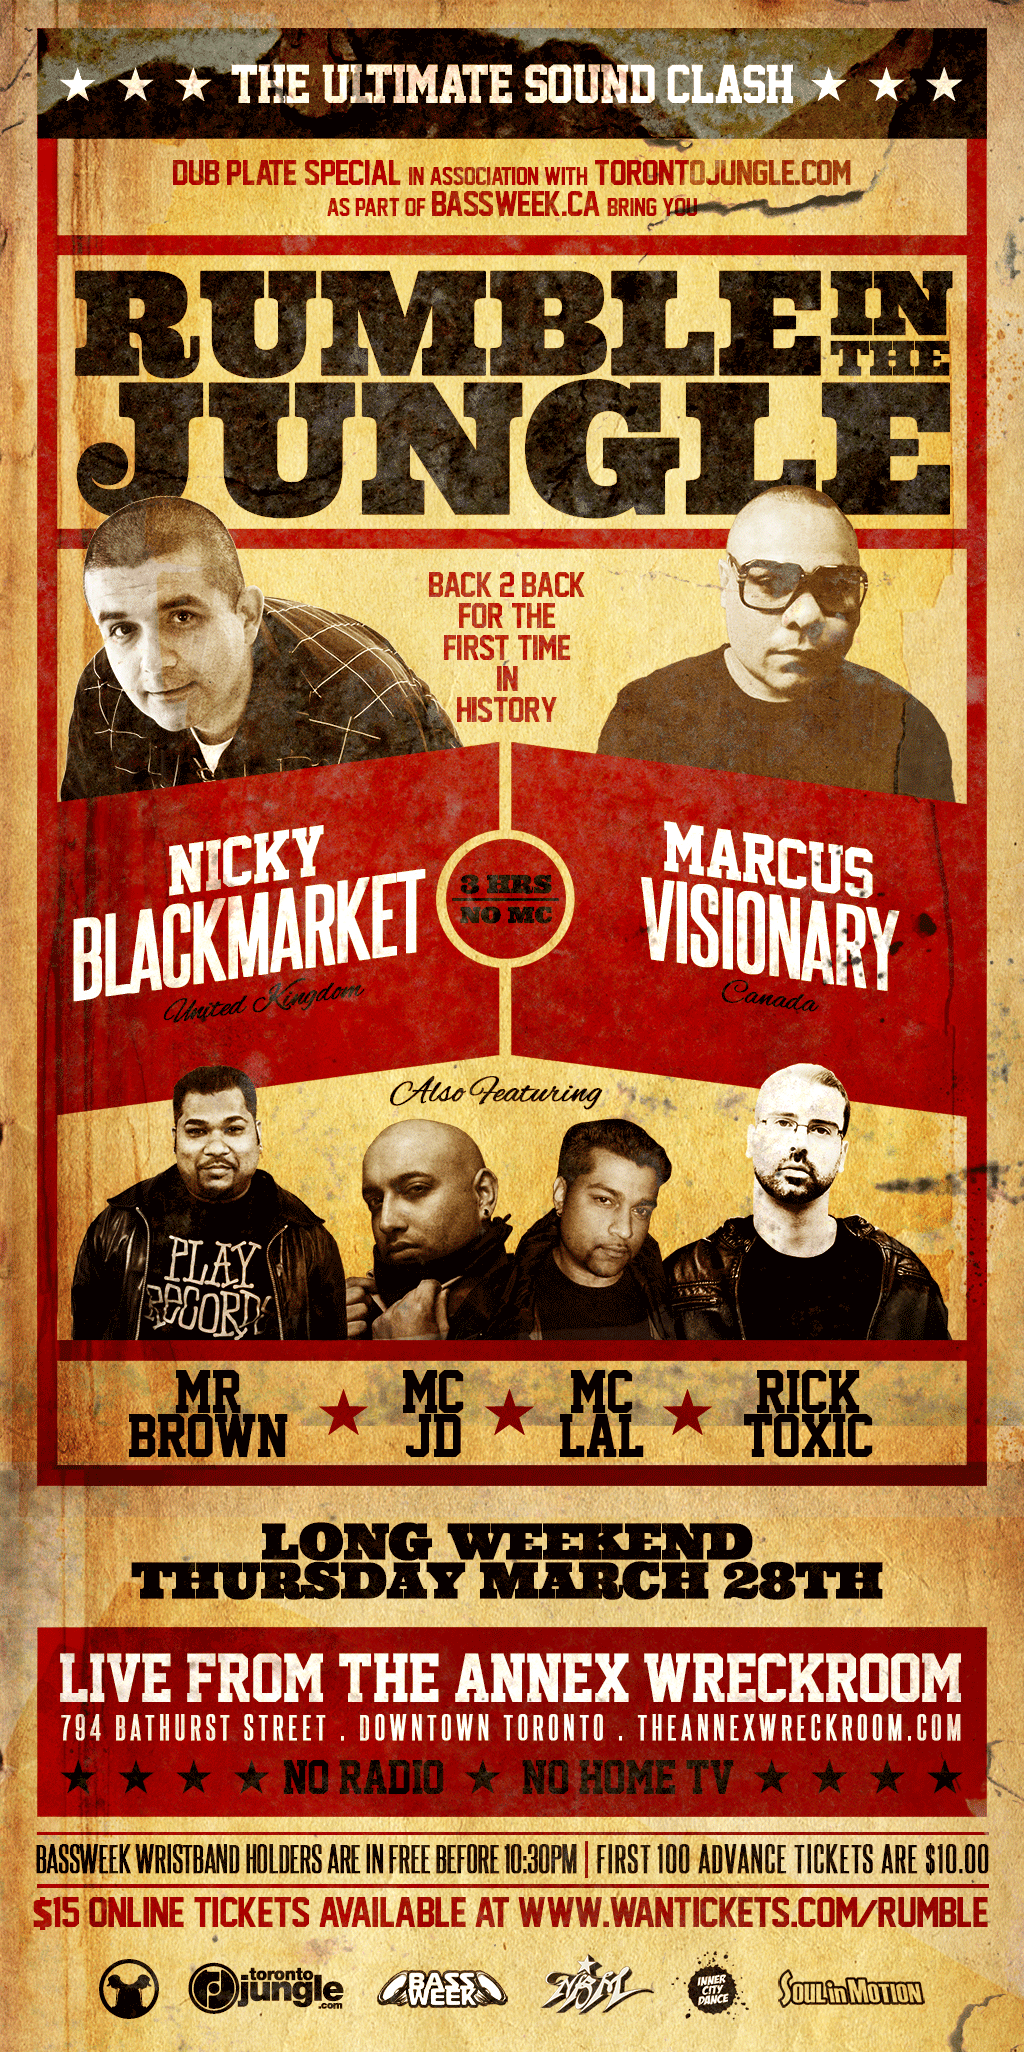 N  icky Blackmarket vs. Marcus Visionary (3 hour set), Rick Toxic, Mr. Brown, MC Lal & MC JD Annex Wreckroom Toronto